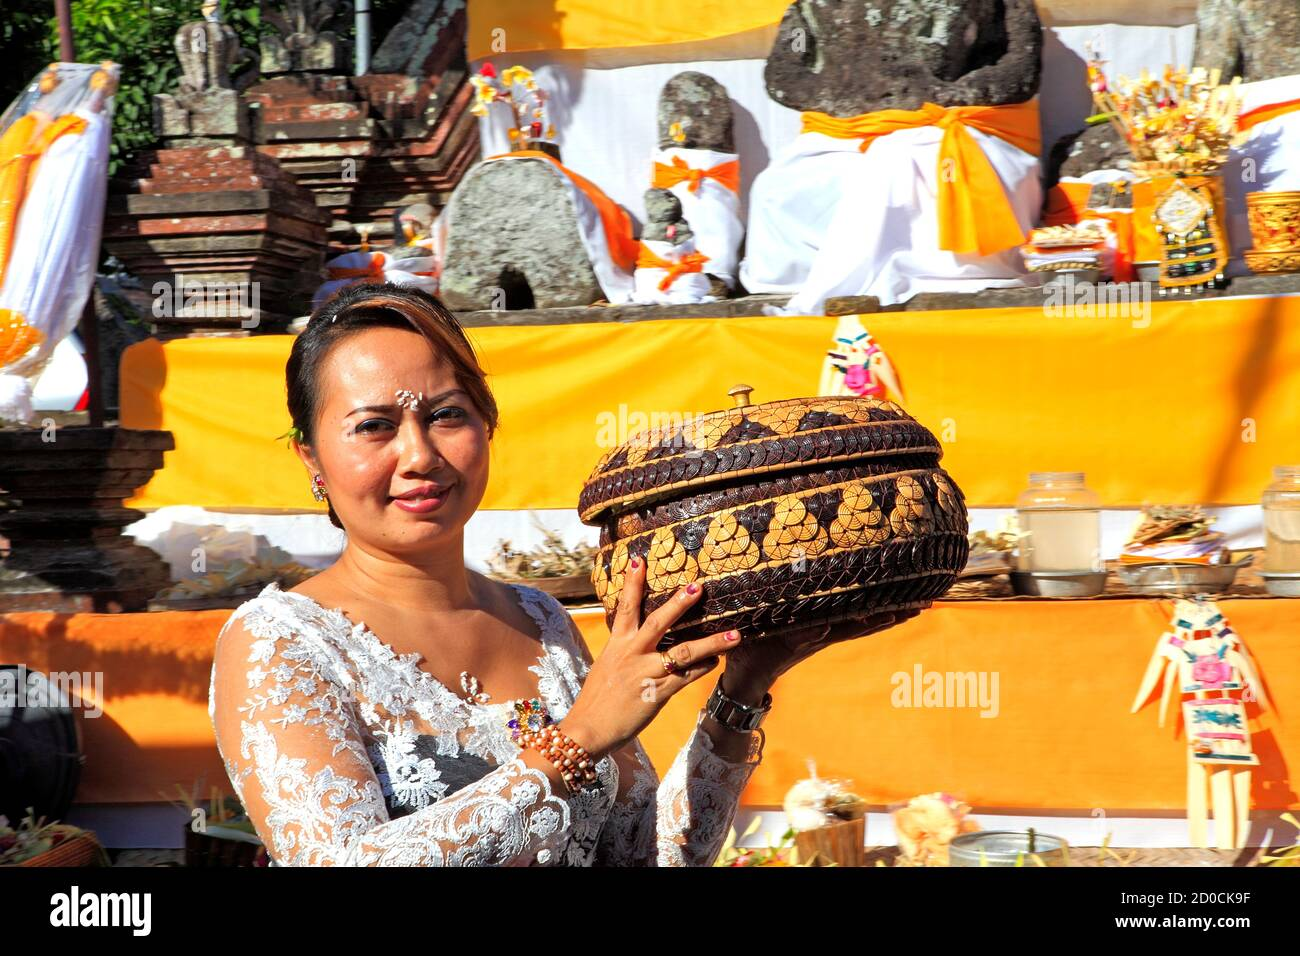 young-balinese-woman-carrying-temple-offerings-at-a-ceremony-pejeng-near-ubud-bali-indonesia-2D0CK9F.jpg